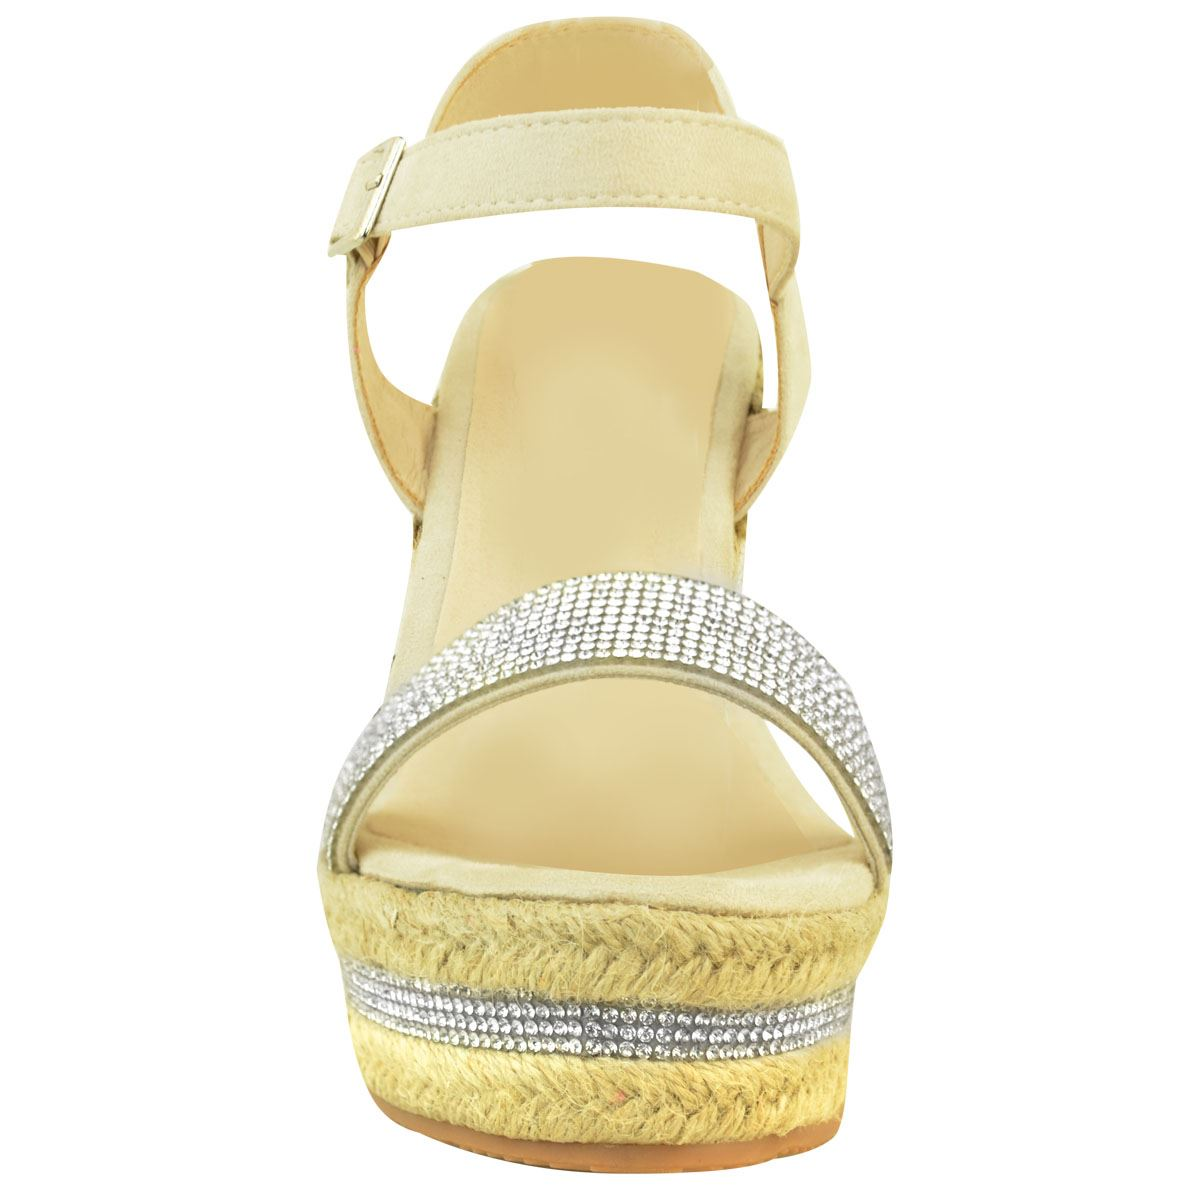 Womens-Ladies-Wedged-High-Heel-Sandals-Raffia-Diamante-Party-Shoes-Summer-Size thumbnail 6